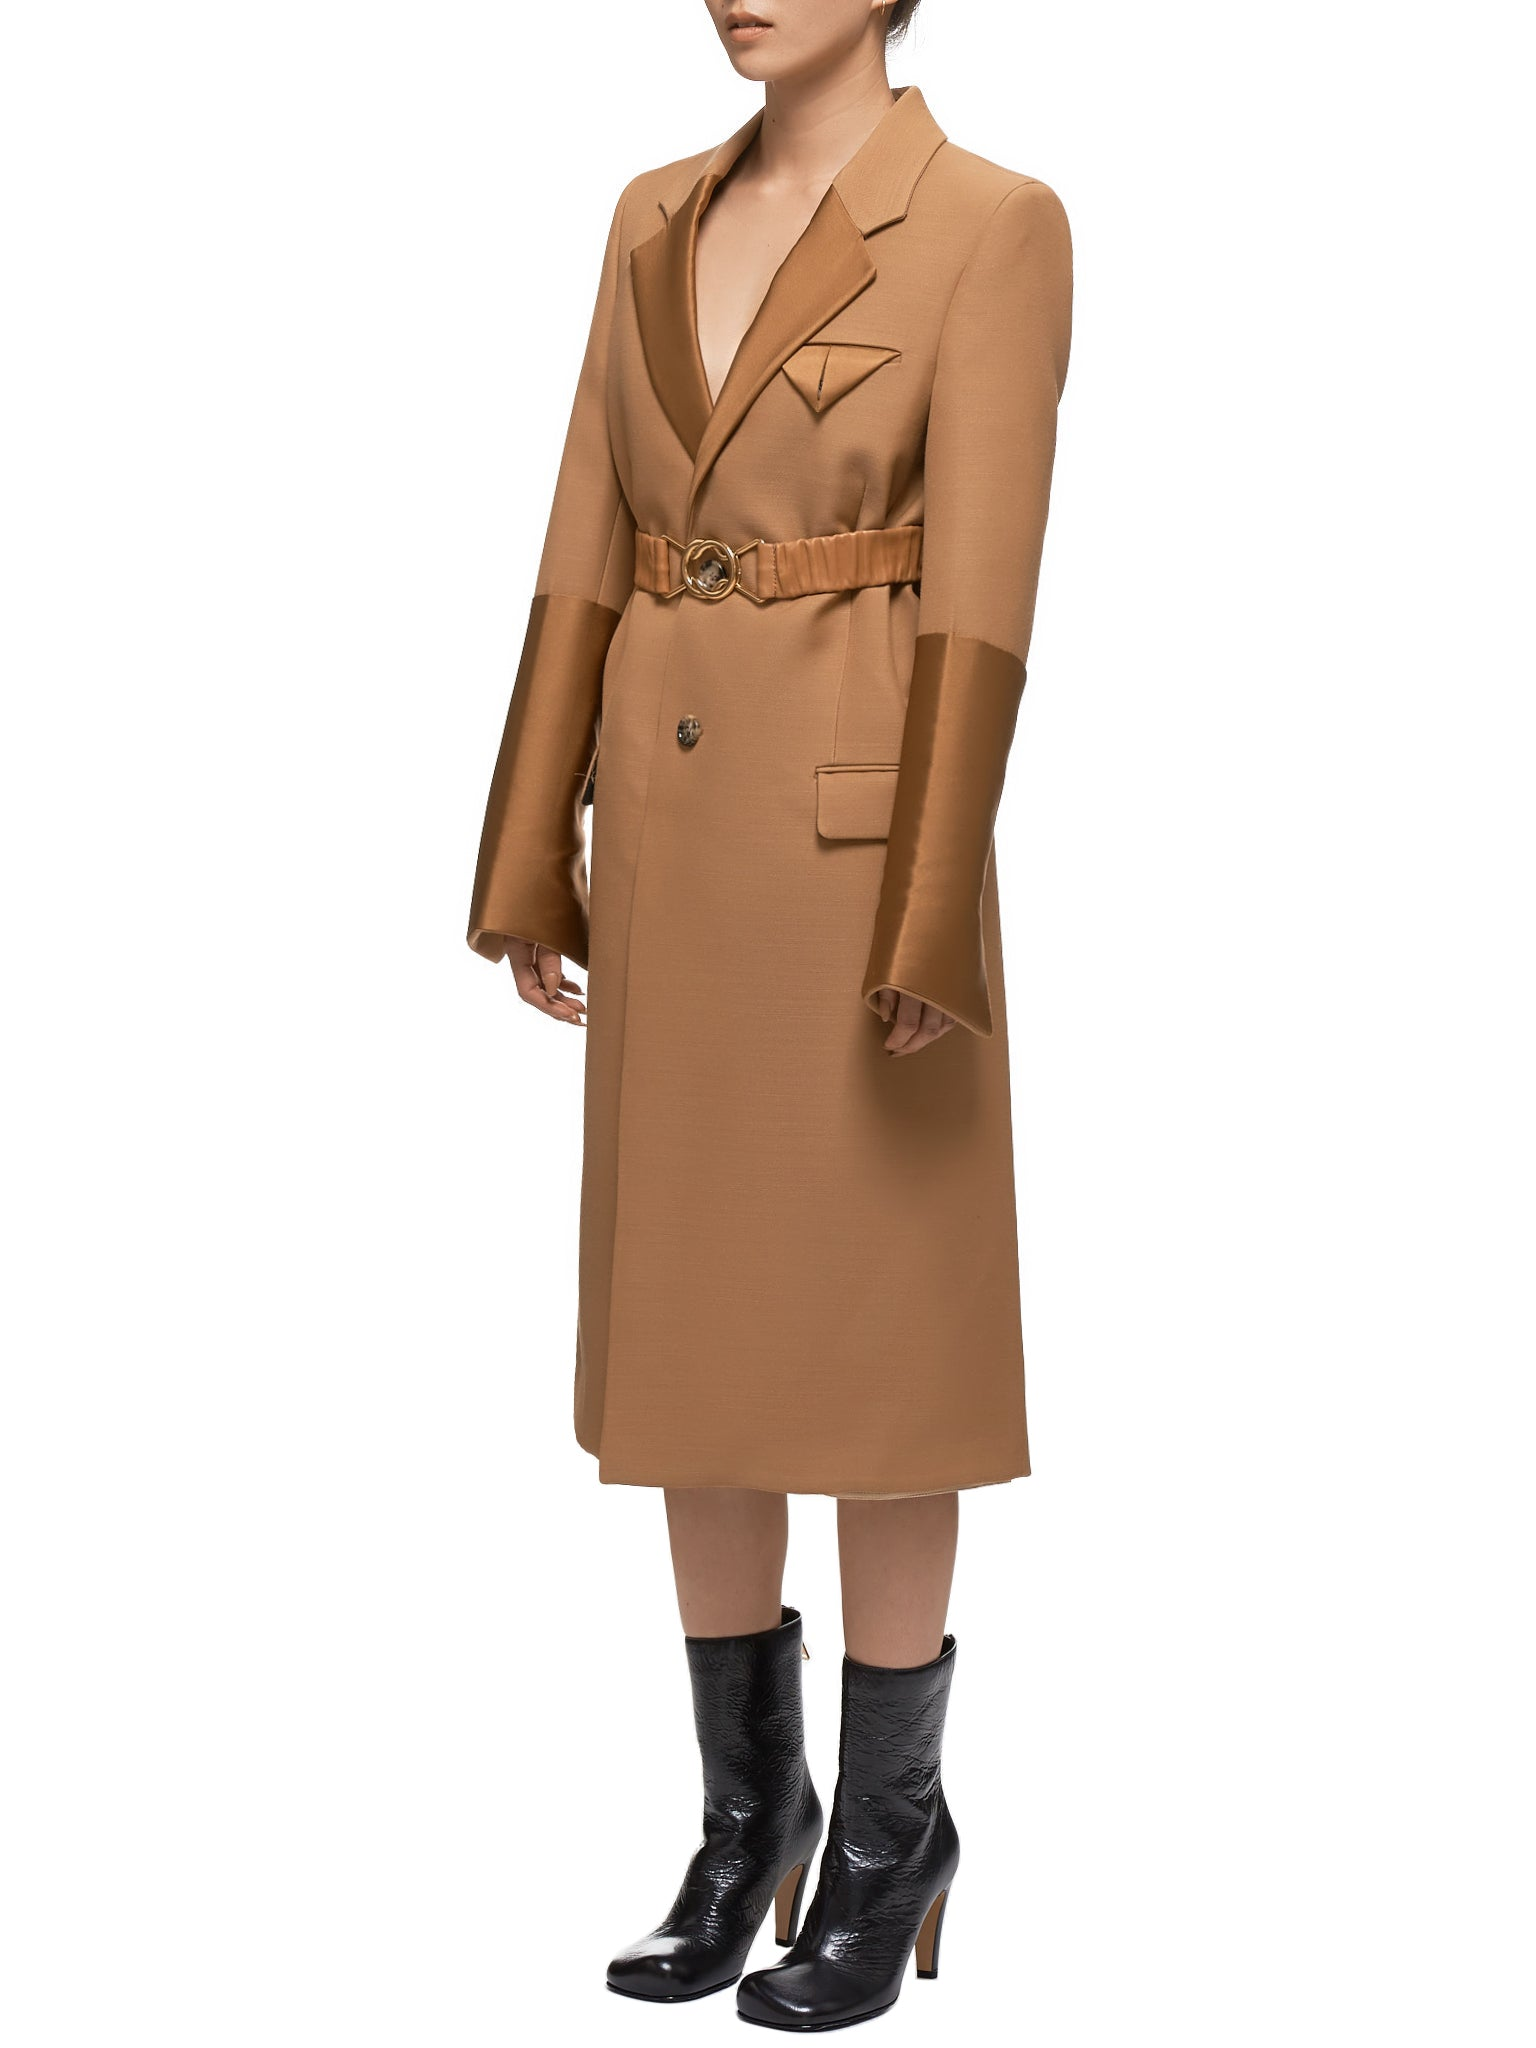 Bottega Veneta Coat - Hlorenzo Side